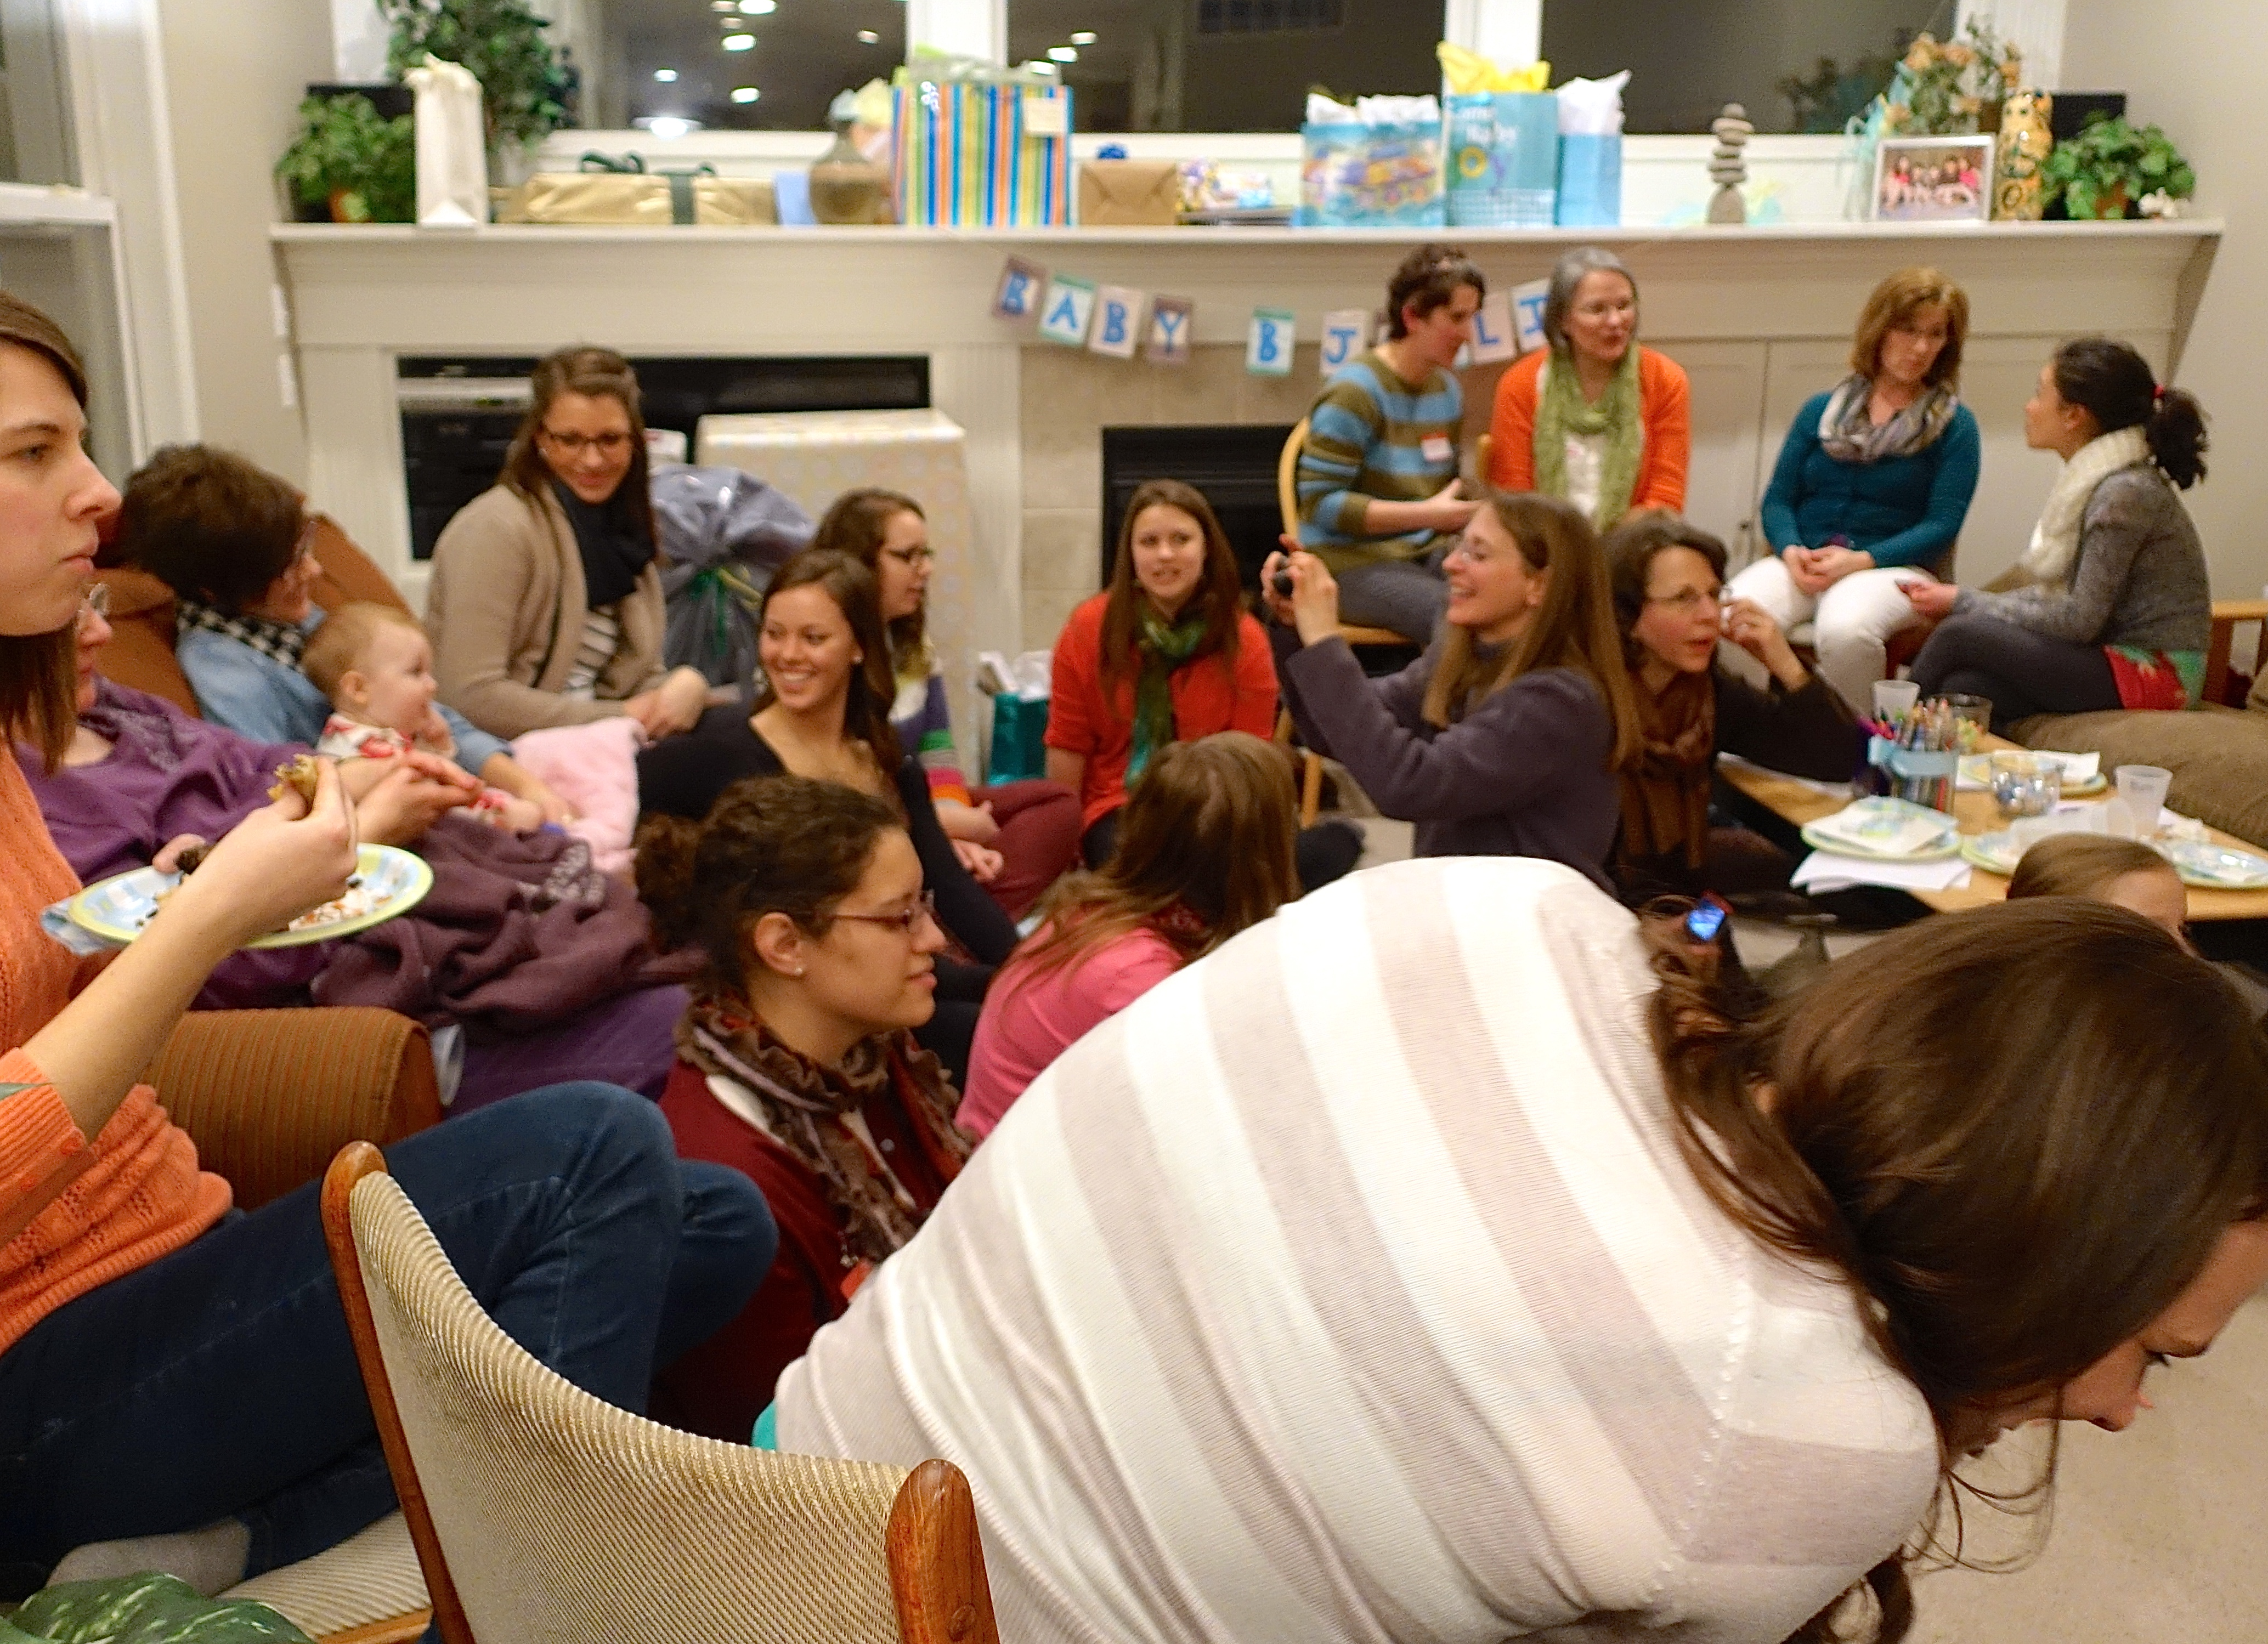 baby shower devotional thoughts for a new mom preparing for